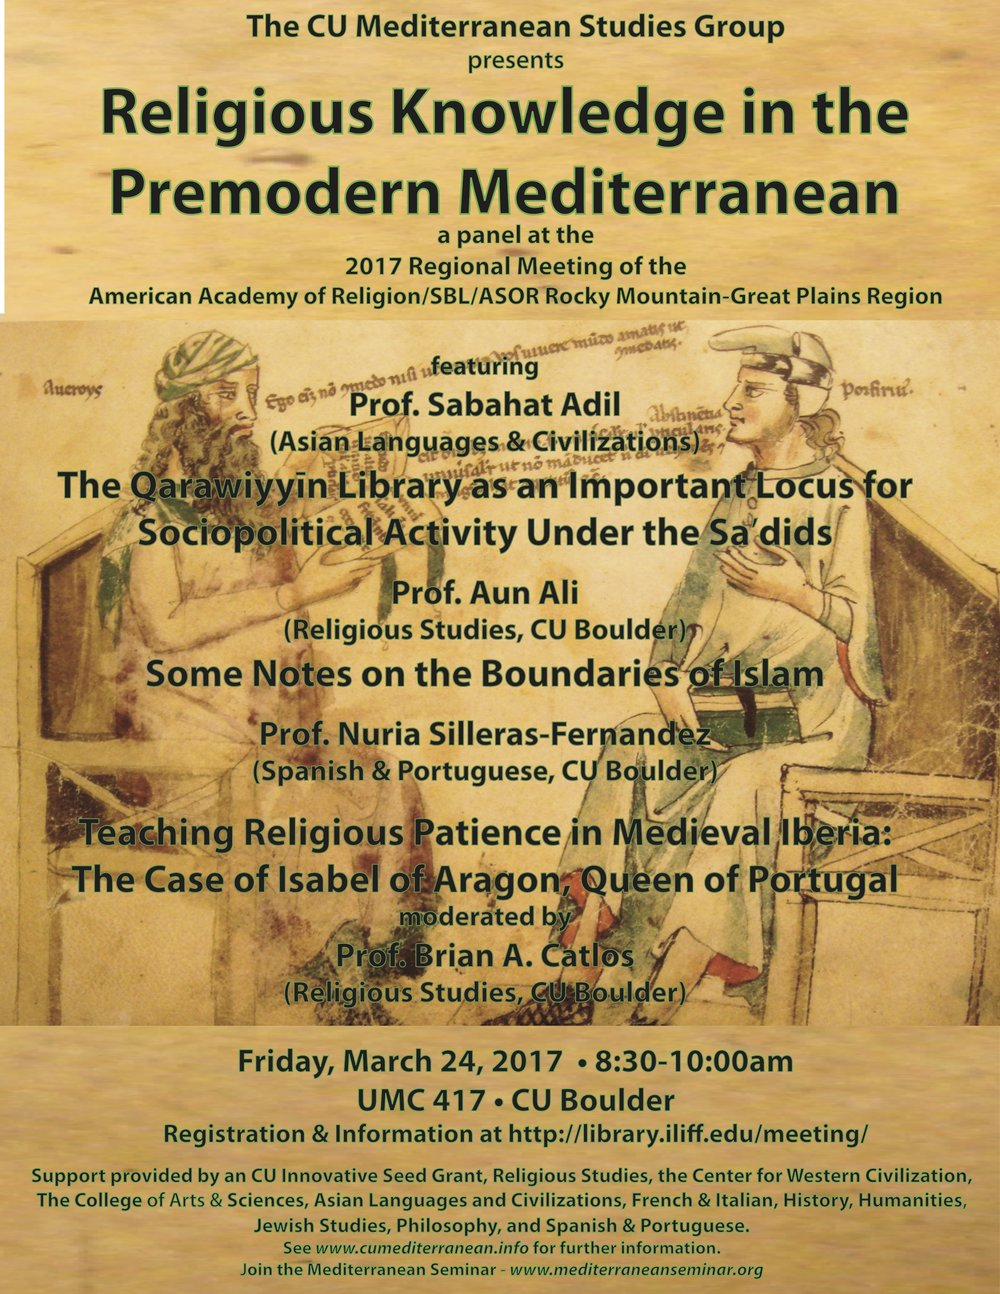 cu mediterranean studies group the mediterranean seminar 170324cumedaarreligiousknowledge jpg